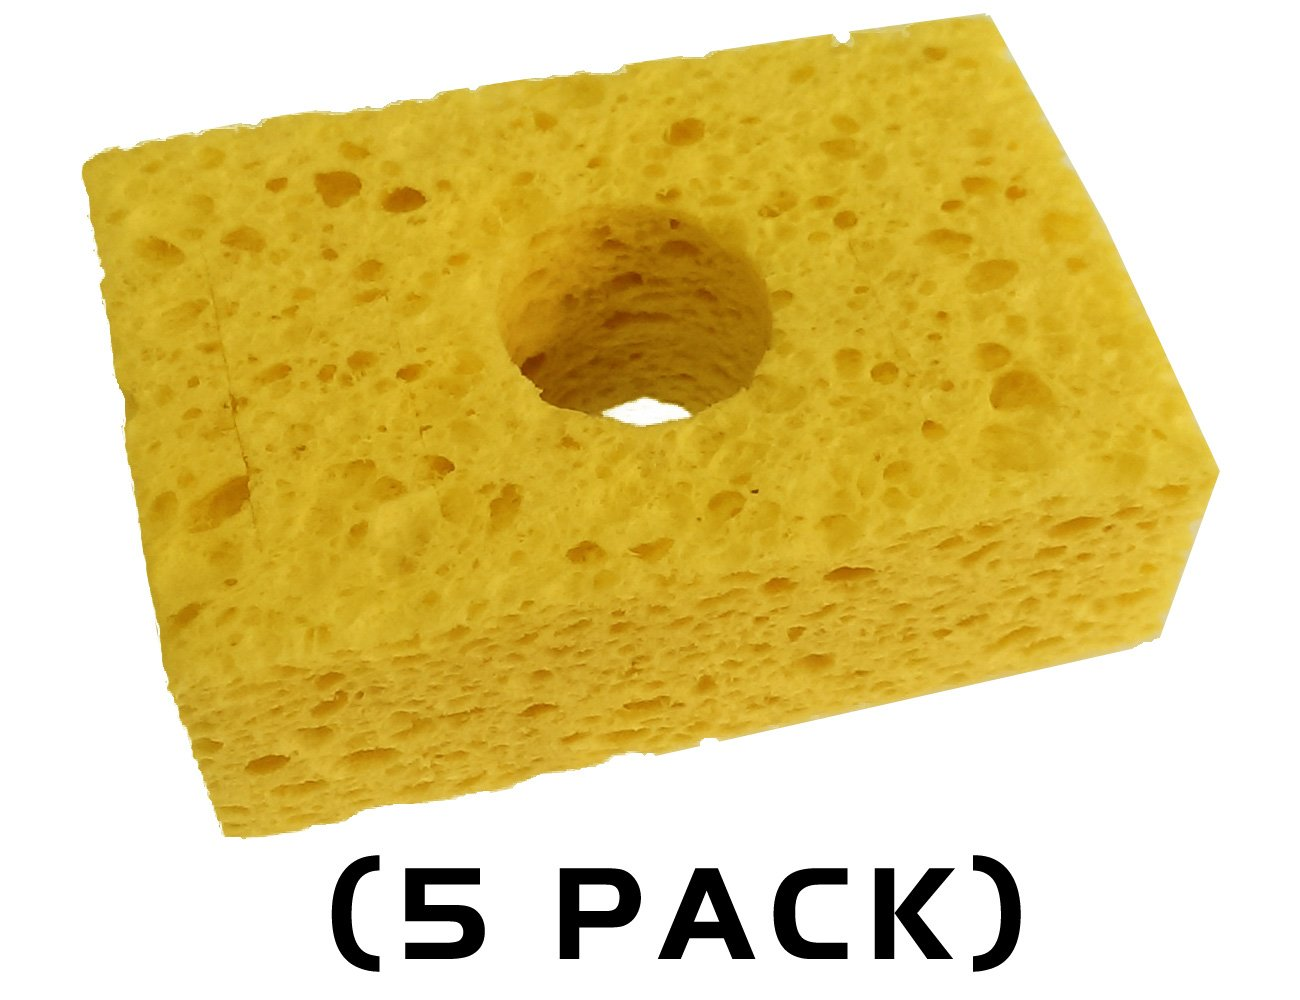 Thermaltronics SPG-5 Yellow, Sponge, (3.2' X 2.1') (5 PACK) (3.2 X 2.1) (5 PACK)